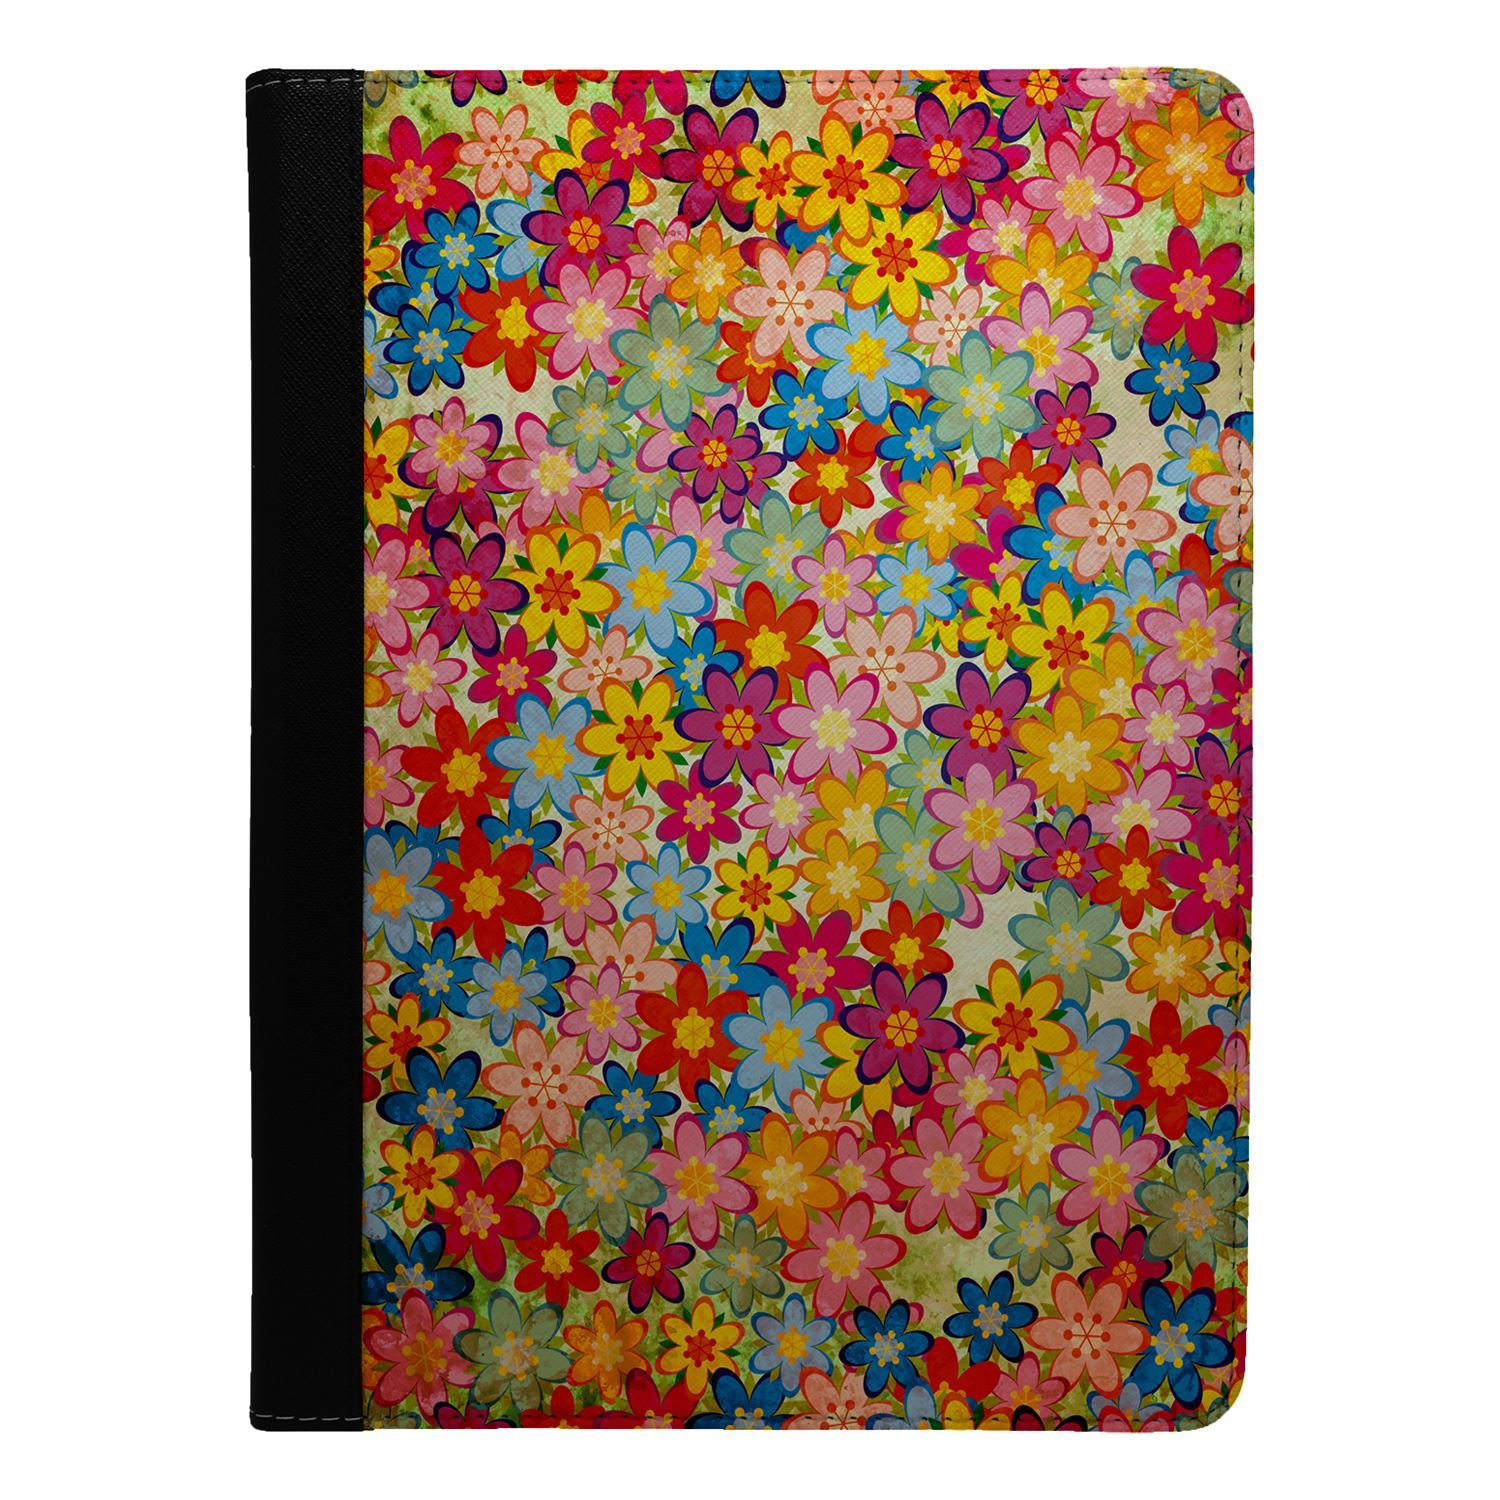 Flowers-Floral-Print-Flip-Case-Cover-For-Apple-iPad-S8887